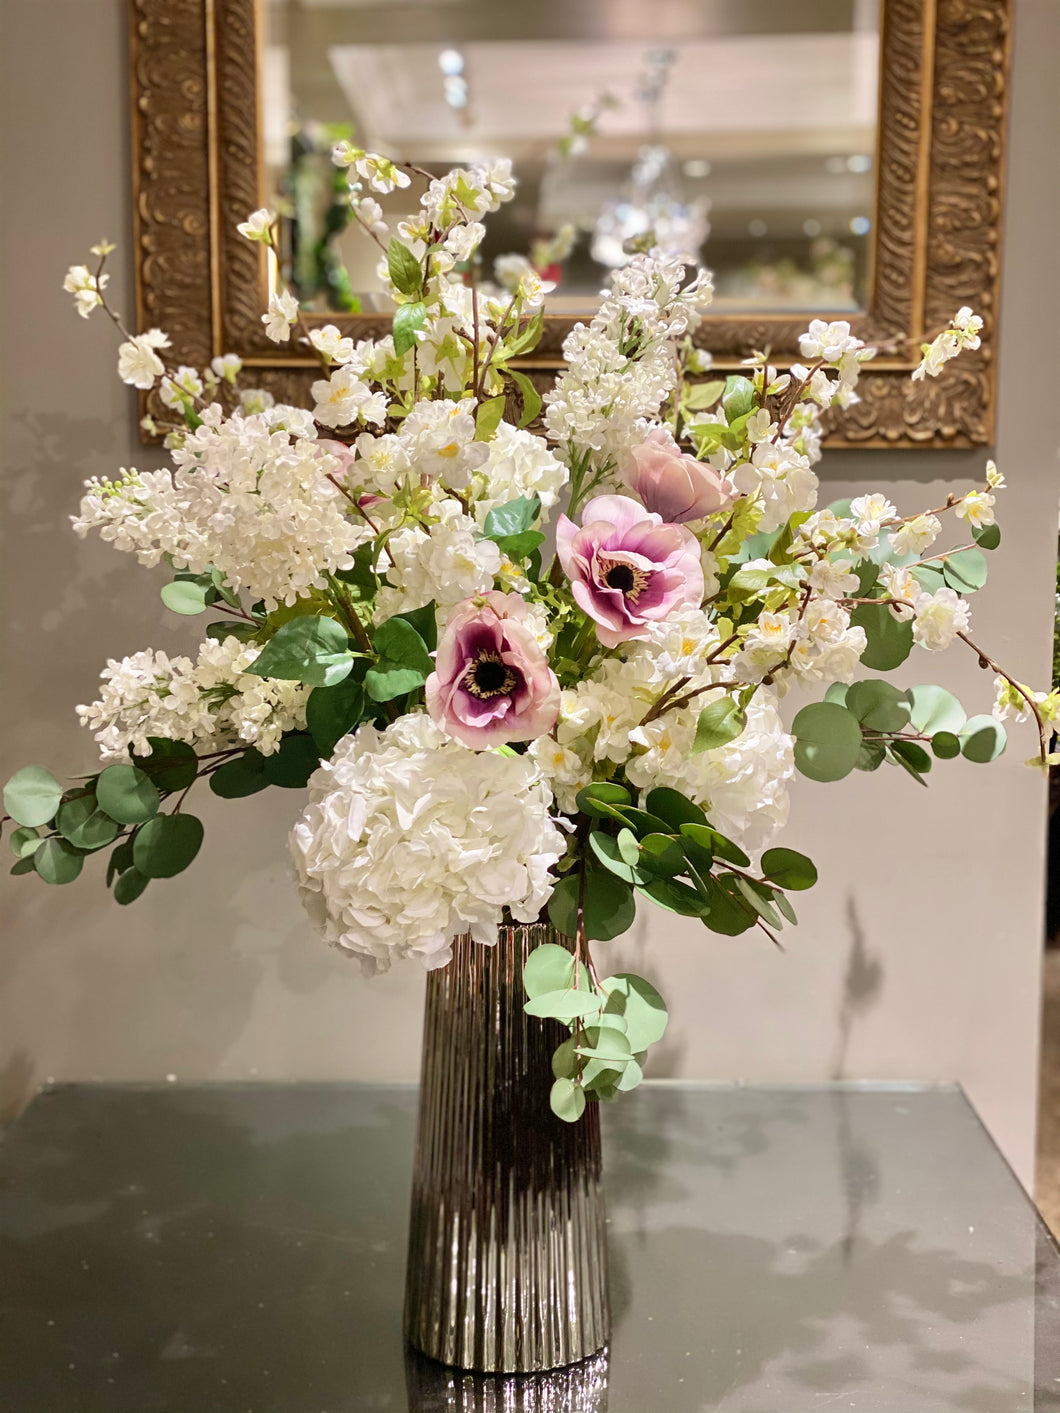 S69 - Delicate White and Lavender Arrangement accented with Silver Dollar Eucalyptus - Flowerplustoronto